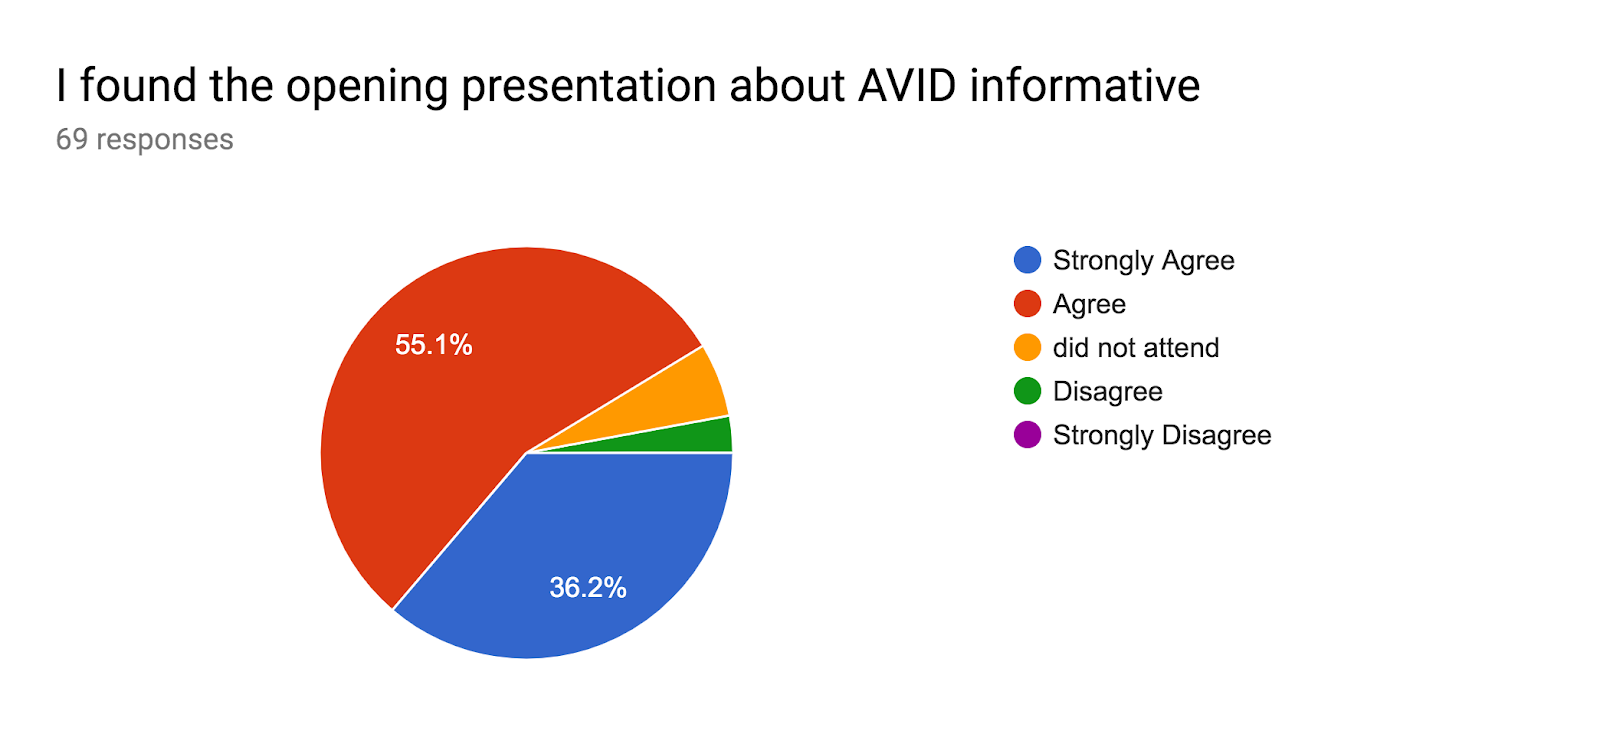 Forms response chart. Question title: I found the opening presentation about AVID informative. Number of responses: 69 responses.